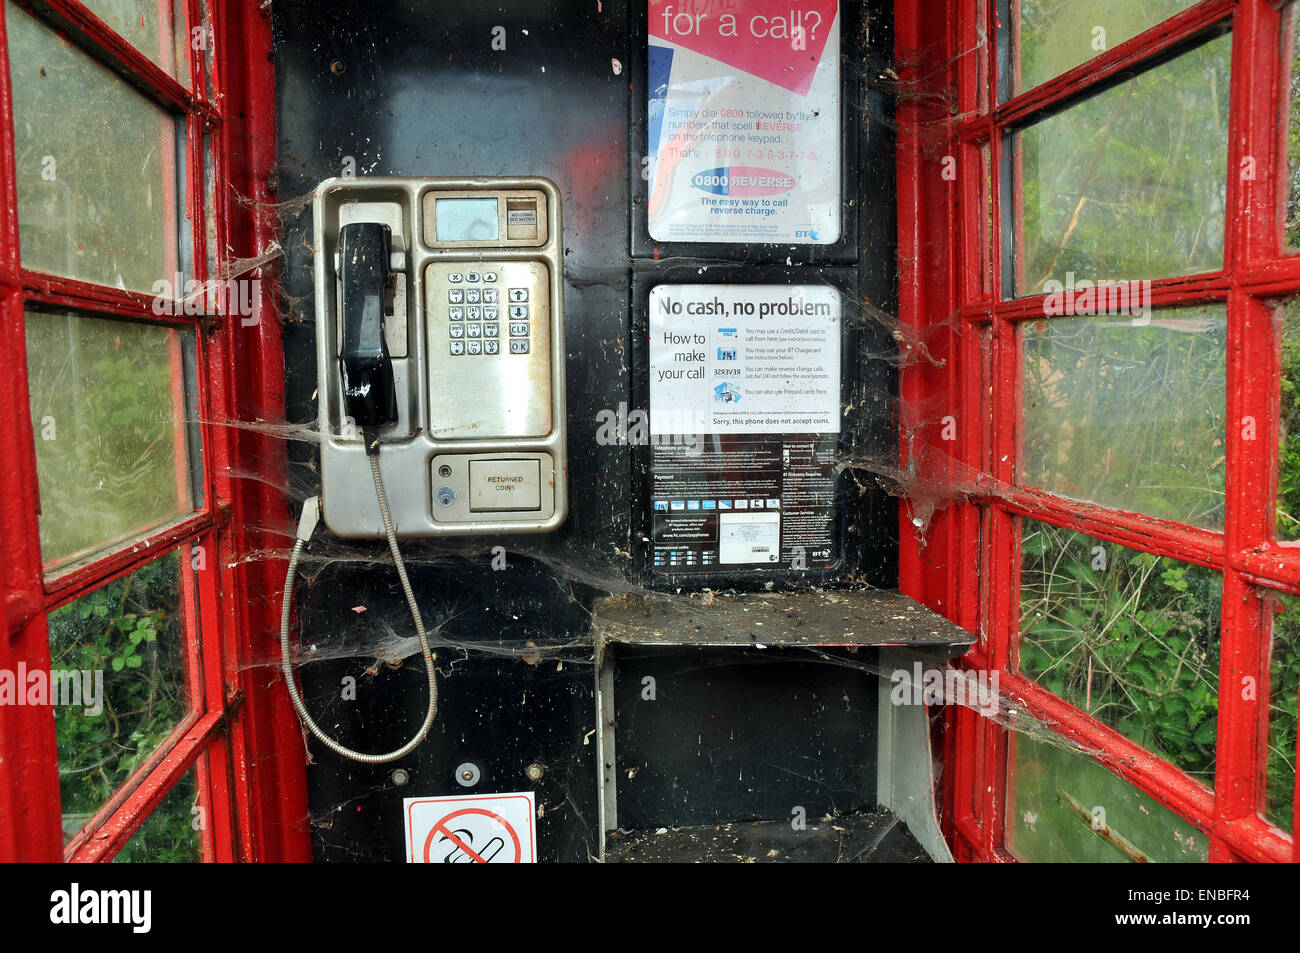 Home Wiring Old Tel Phone Box Circuit And Diagram Hub Outdoor Telephone Inside Stock Photos Rh Alamy Com Interface